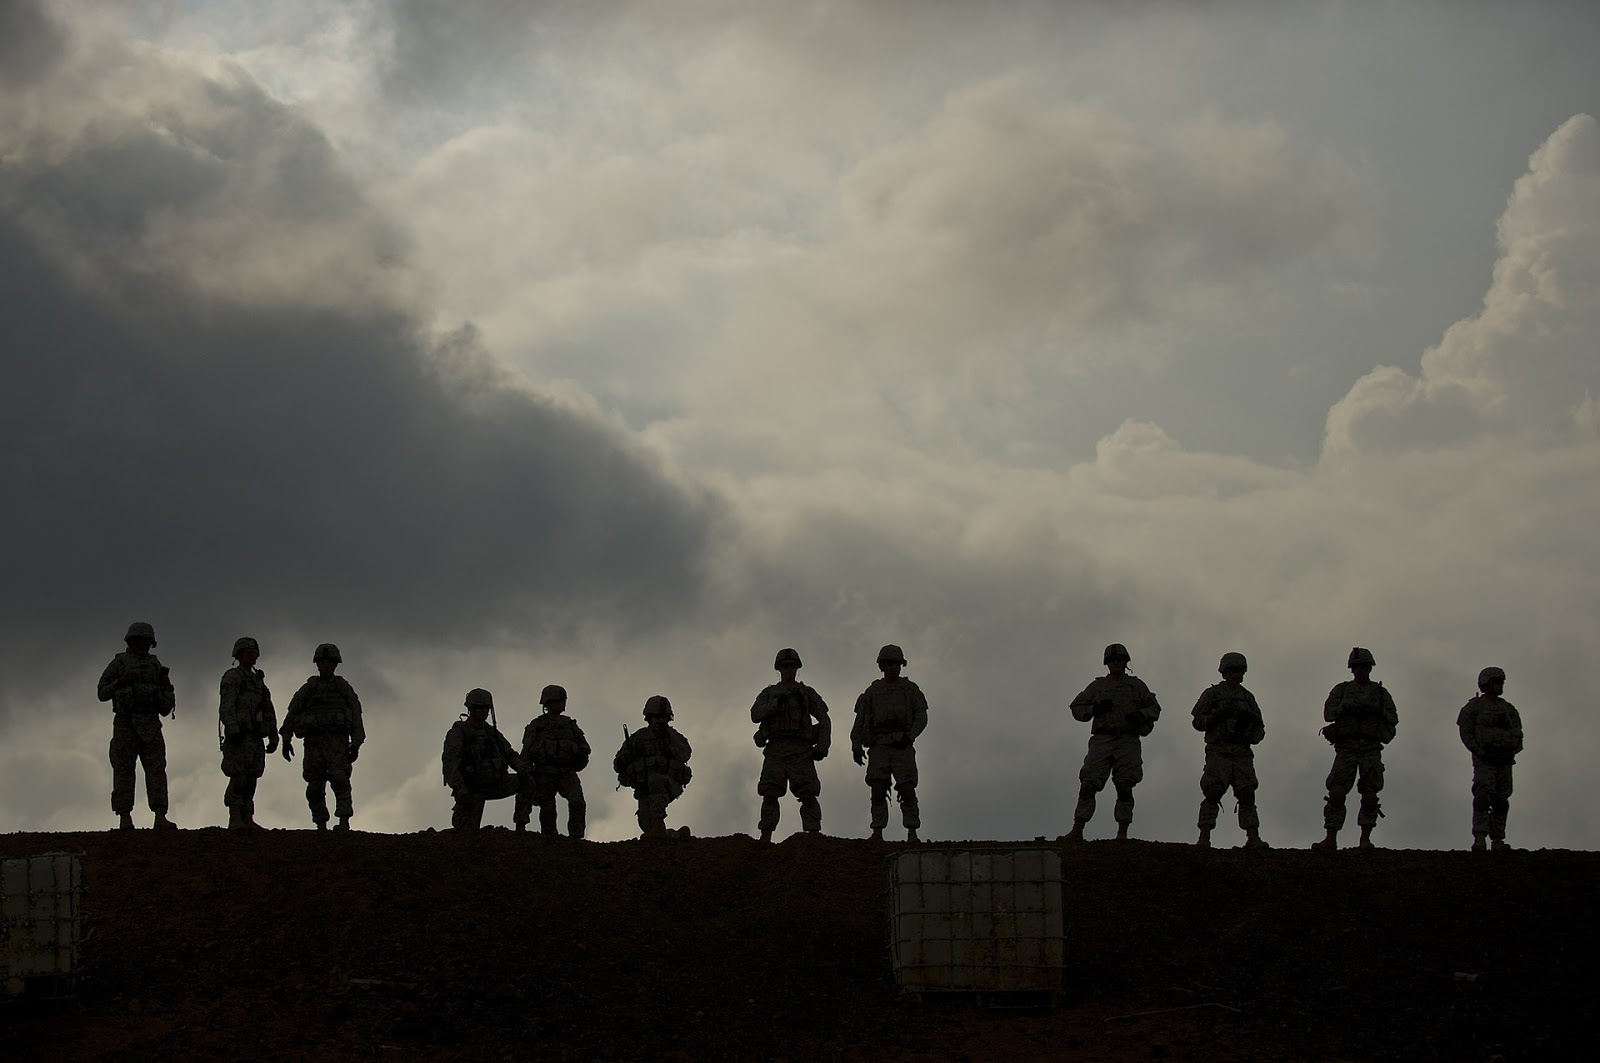 a row of soldiers standing on a hill silhouetted by a clowdy sky to illustrate a blog post about the mini-series band of brothers